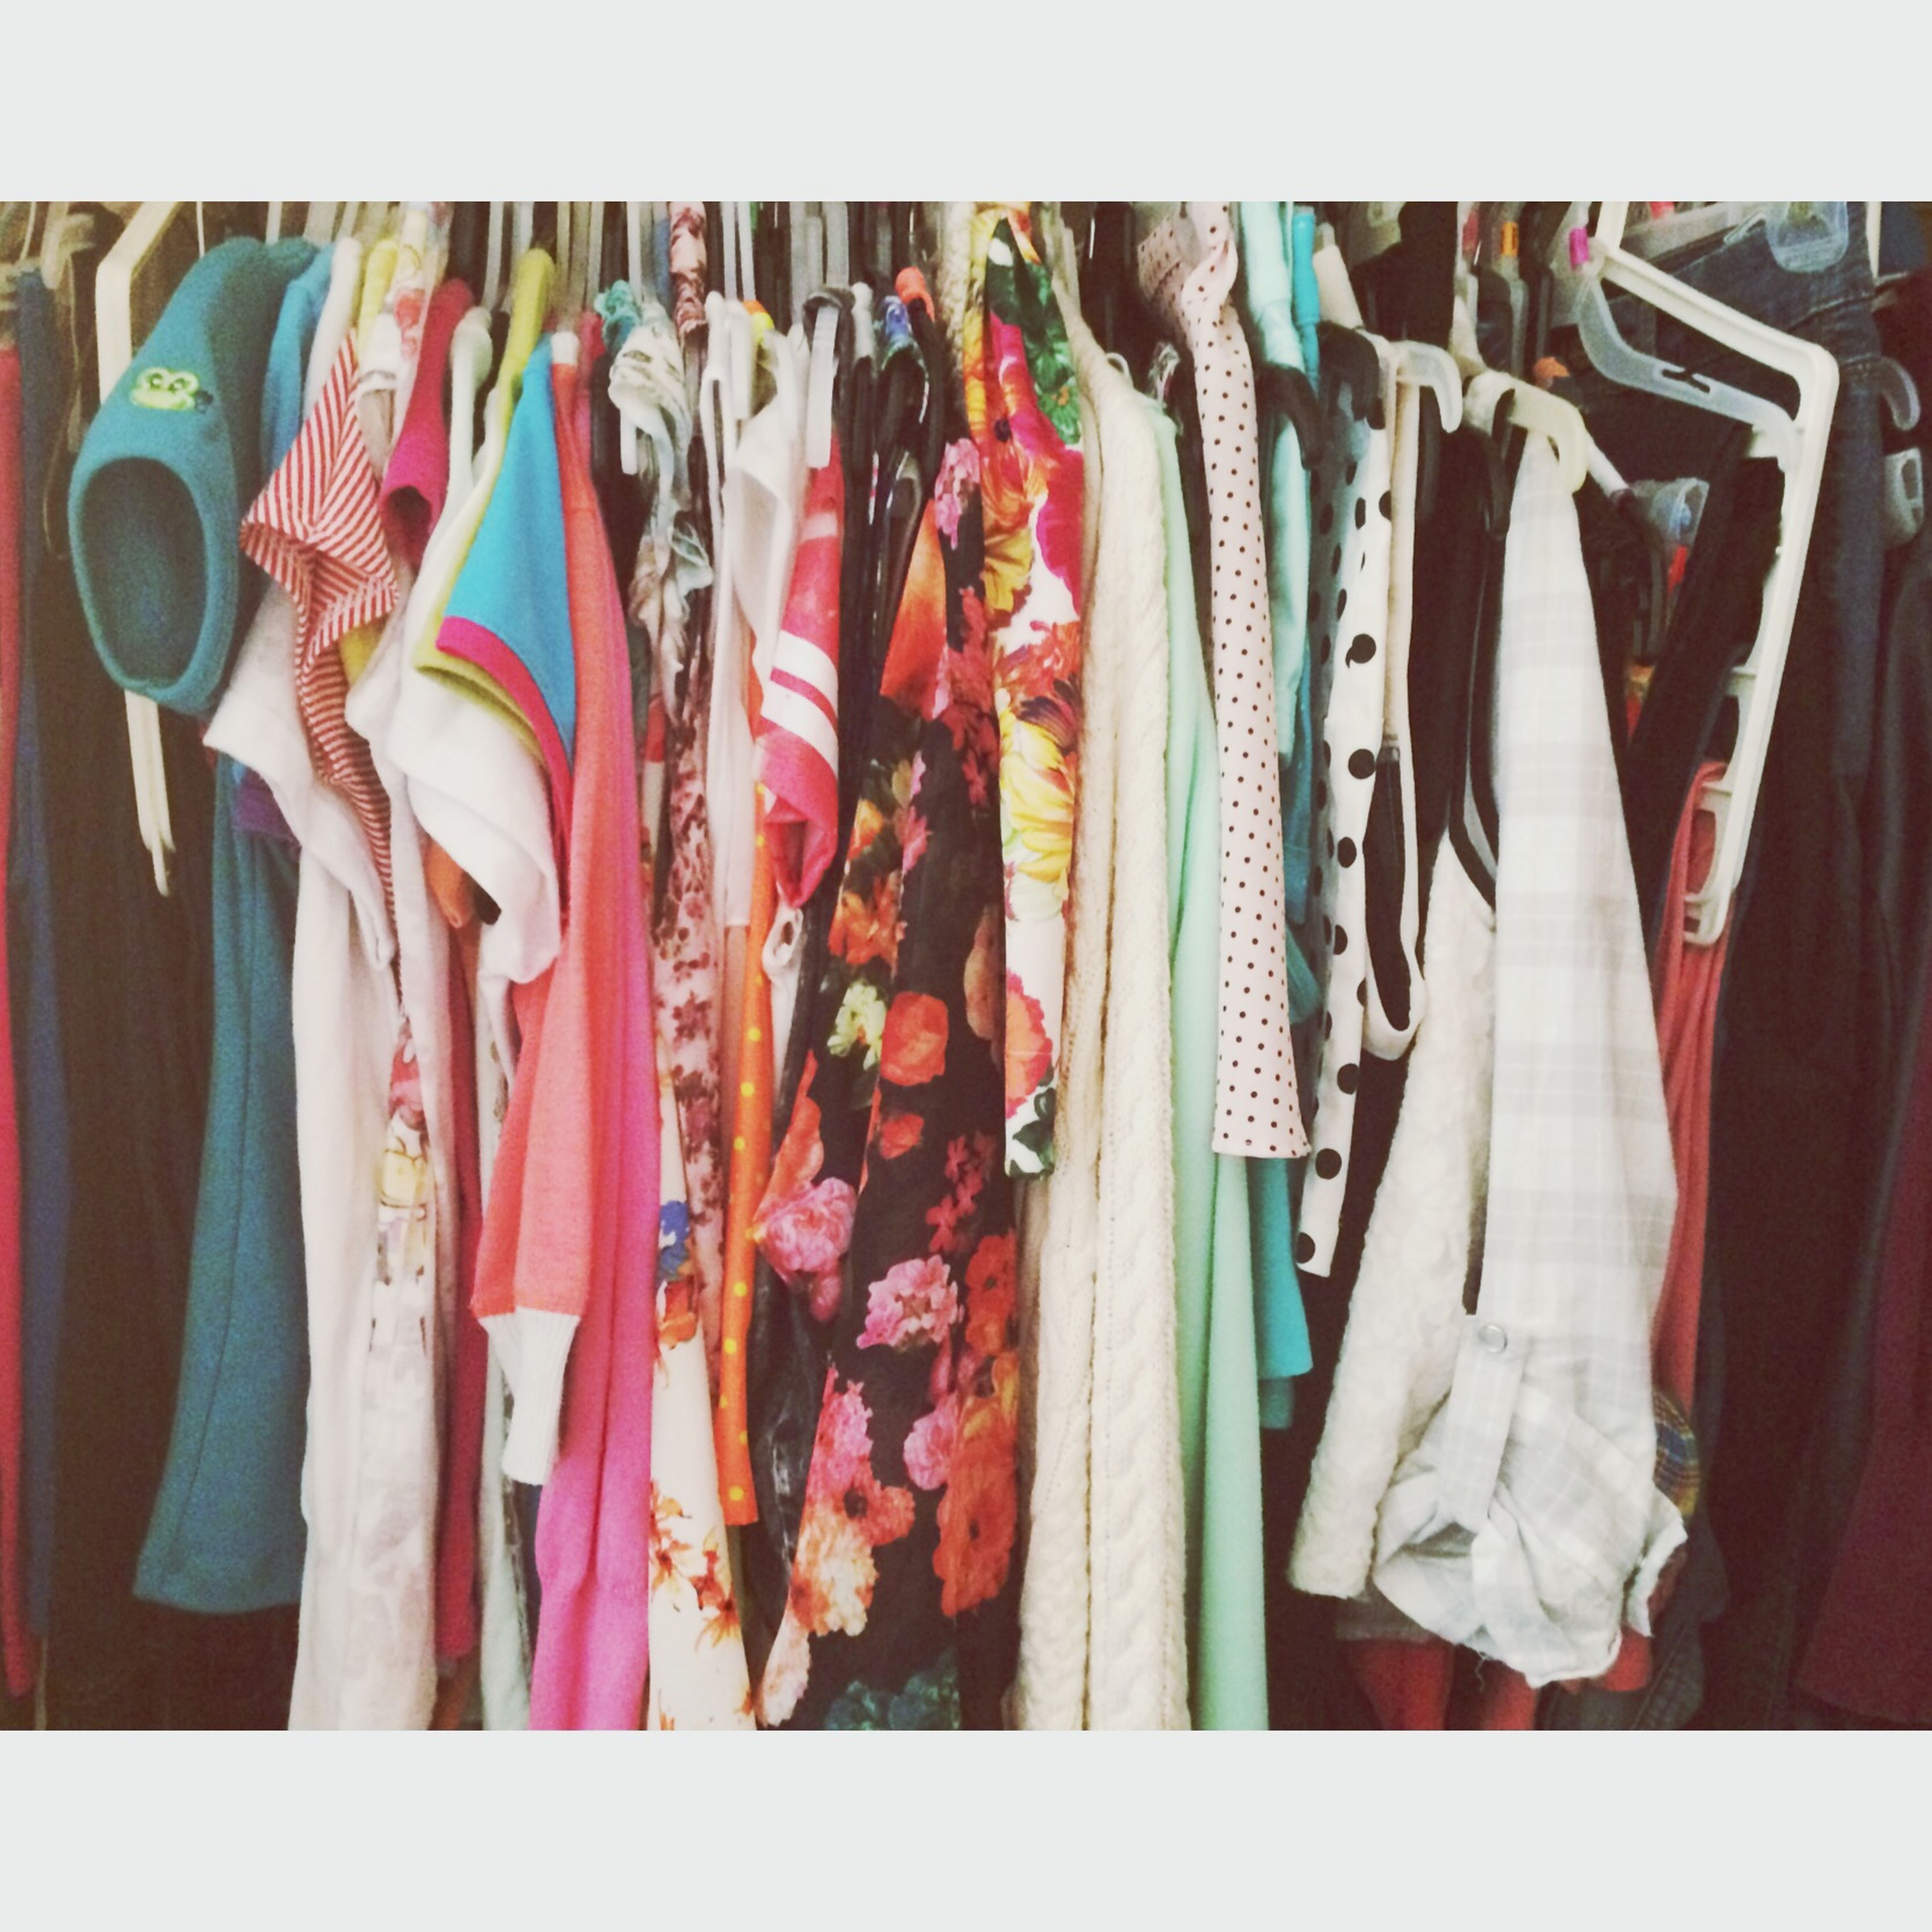 transfer print, clothing, variation, hanging, choice, auto post production filter, indoors, for sale, multi colored, retail, fashion, textile, large group of objects, abundance, in a row, arrangement, standing, display, collection